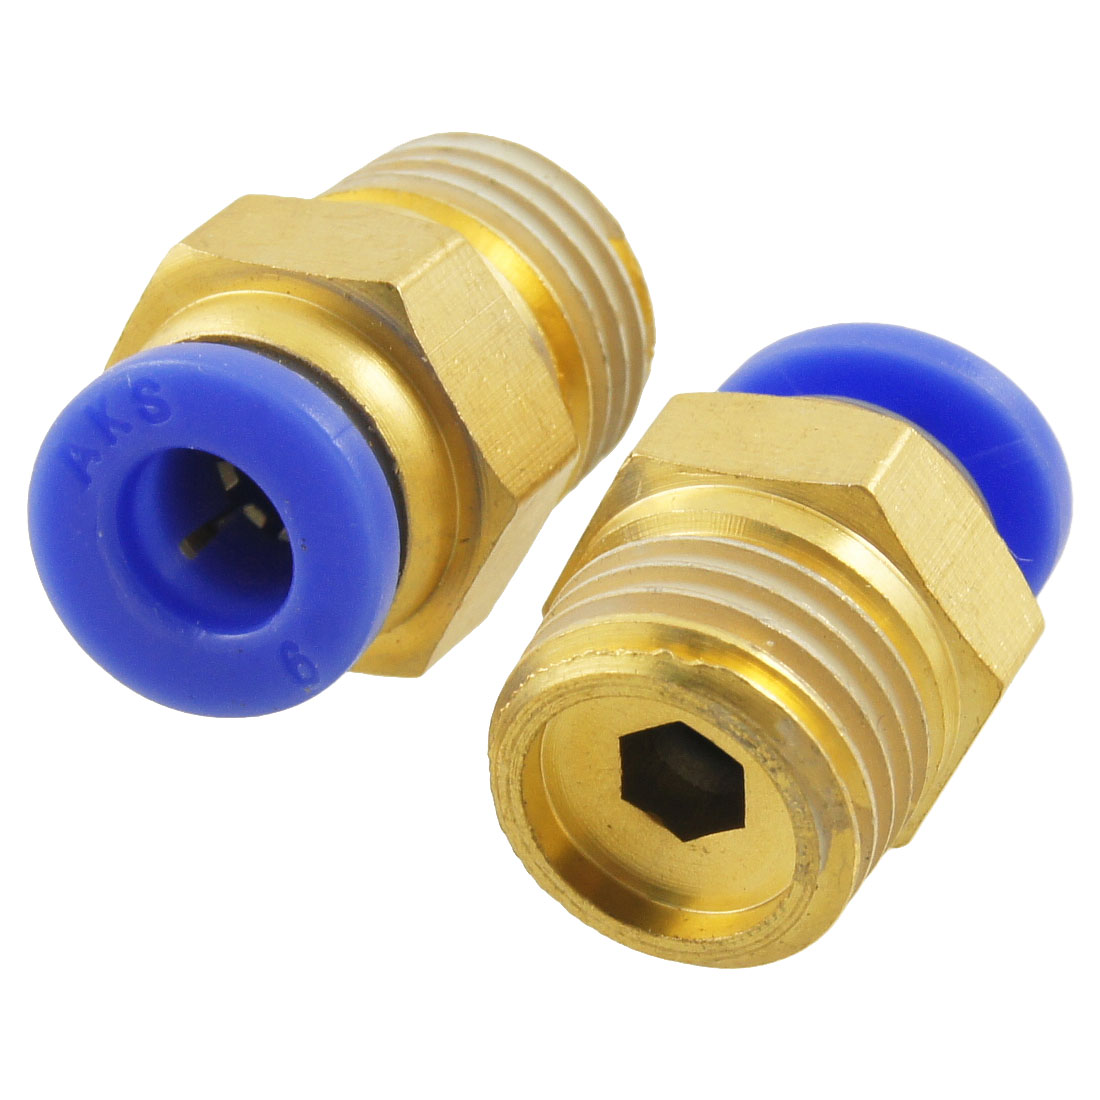 "Unique Bargains 1/4"" Male Thread to 6mm OD Tube Push In Quick Fittings 2pcs"